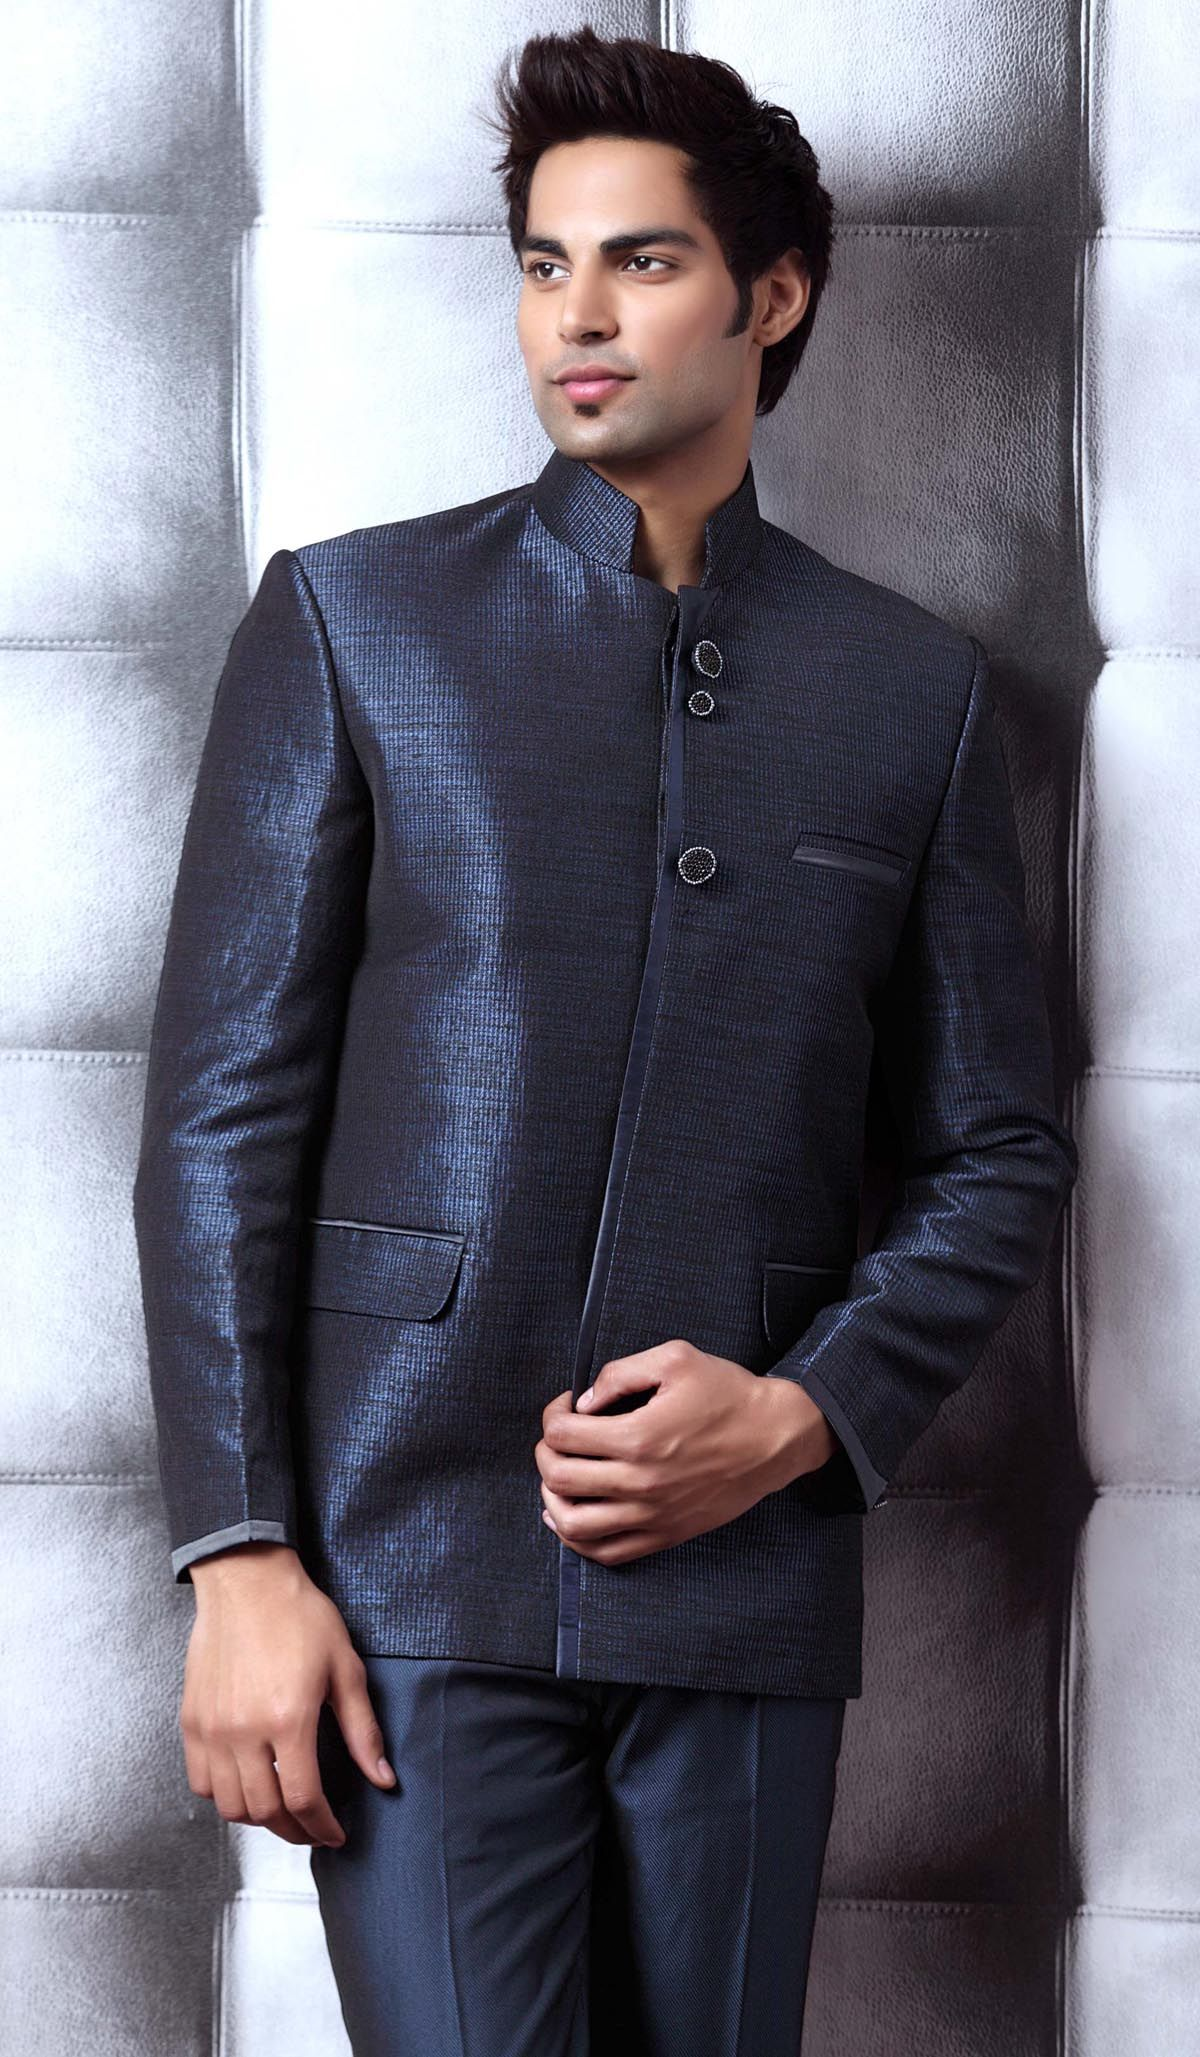 Wedding Suits For Men Inspiration For Male | Wedding, Grey and ...